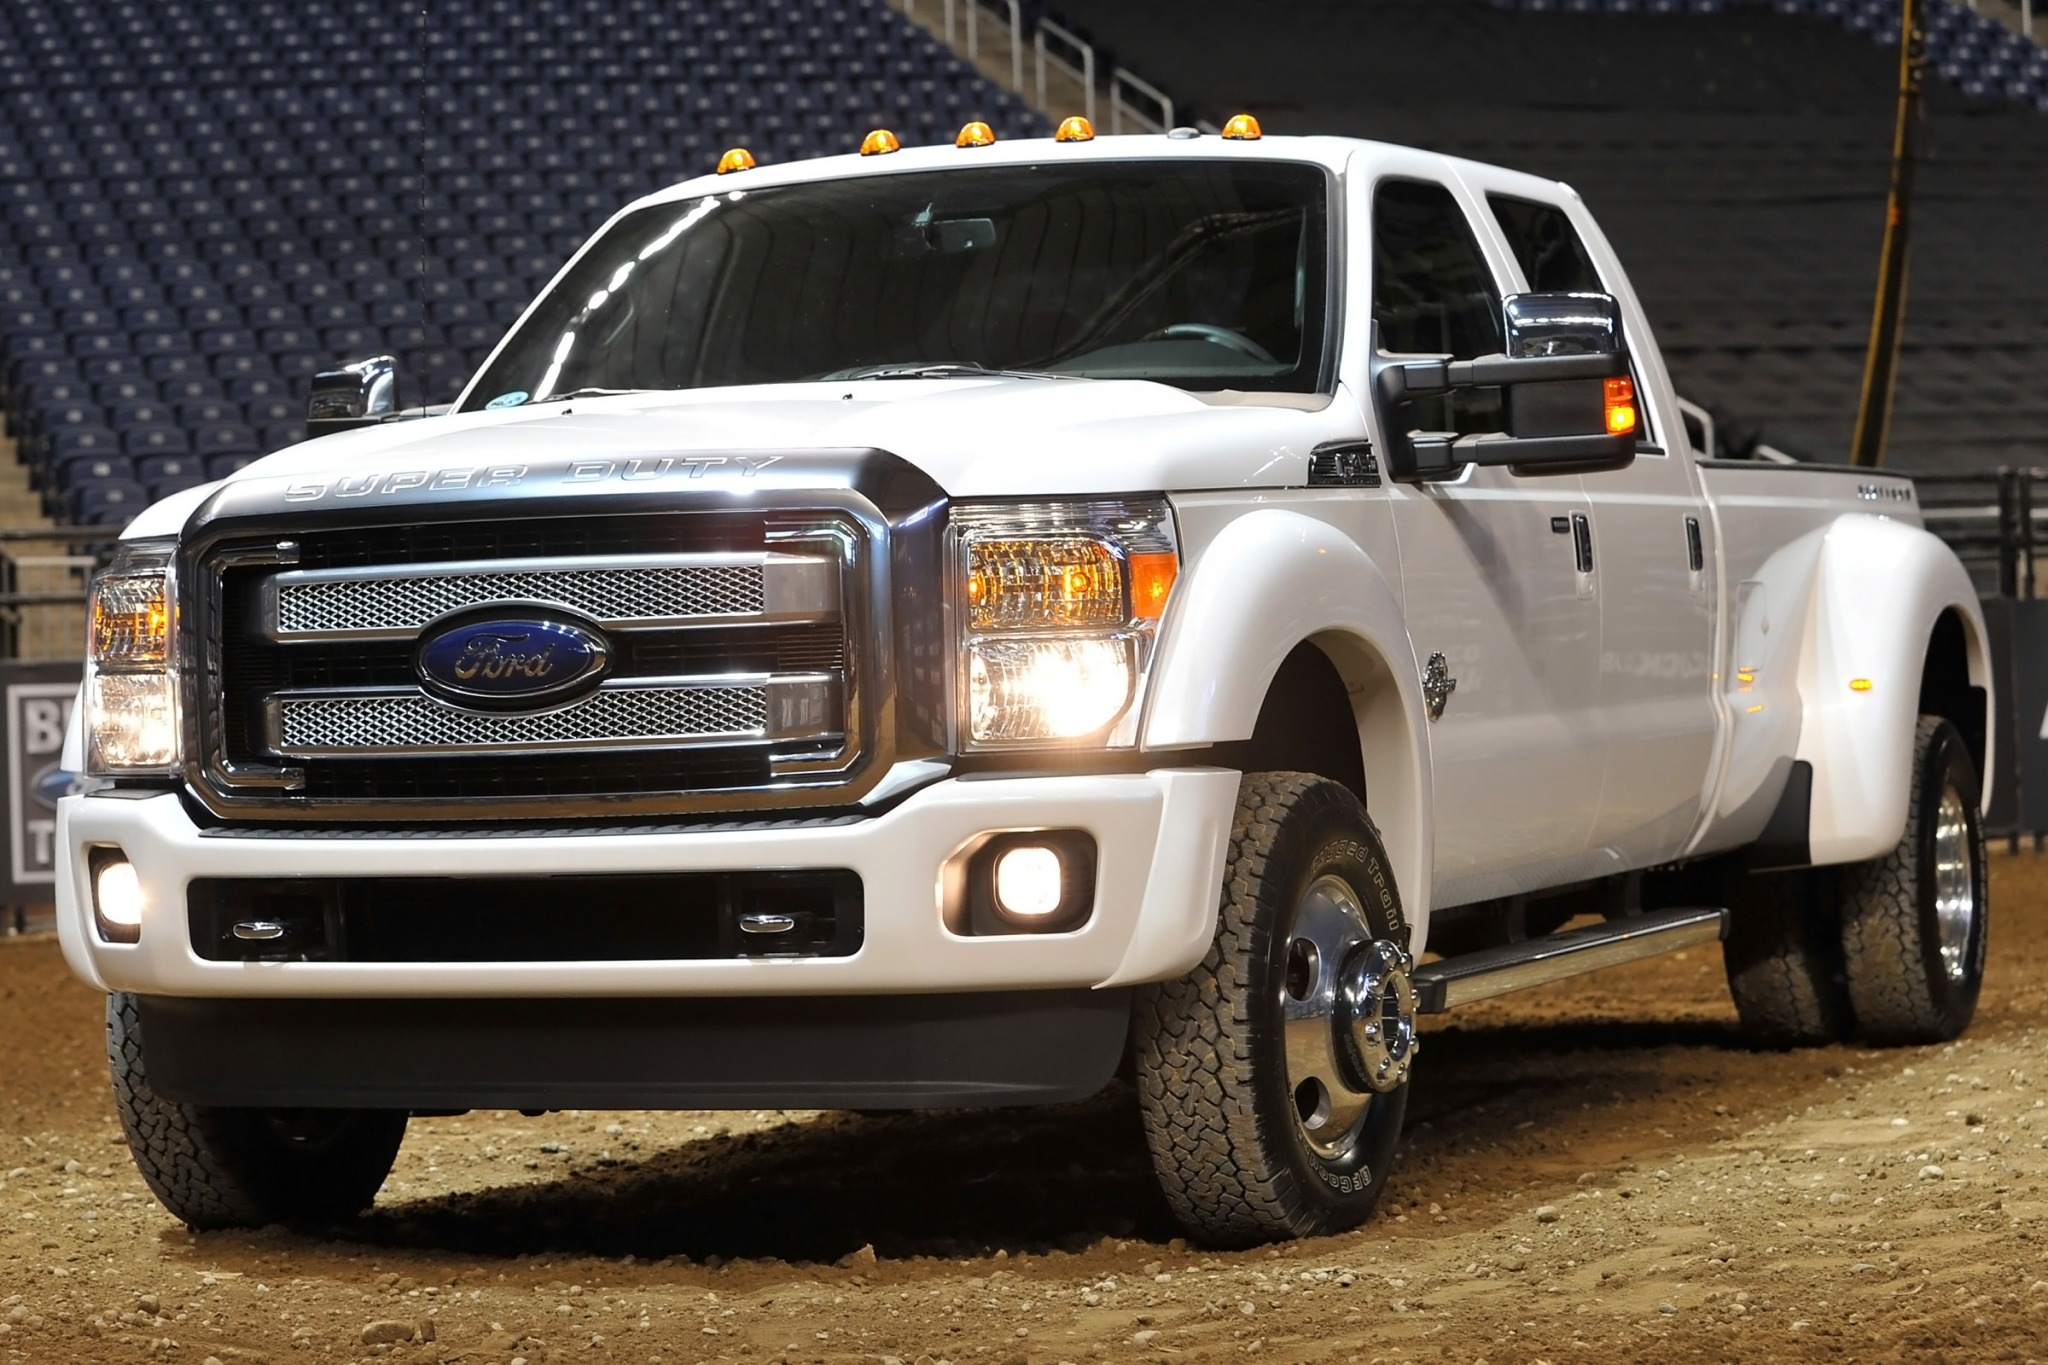 2013 Ford F-350 Super Dut interior #1